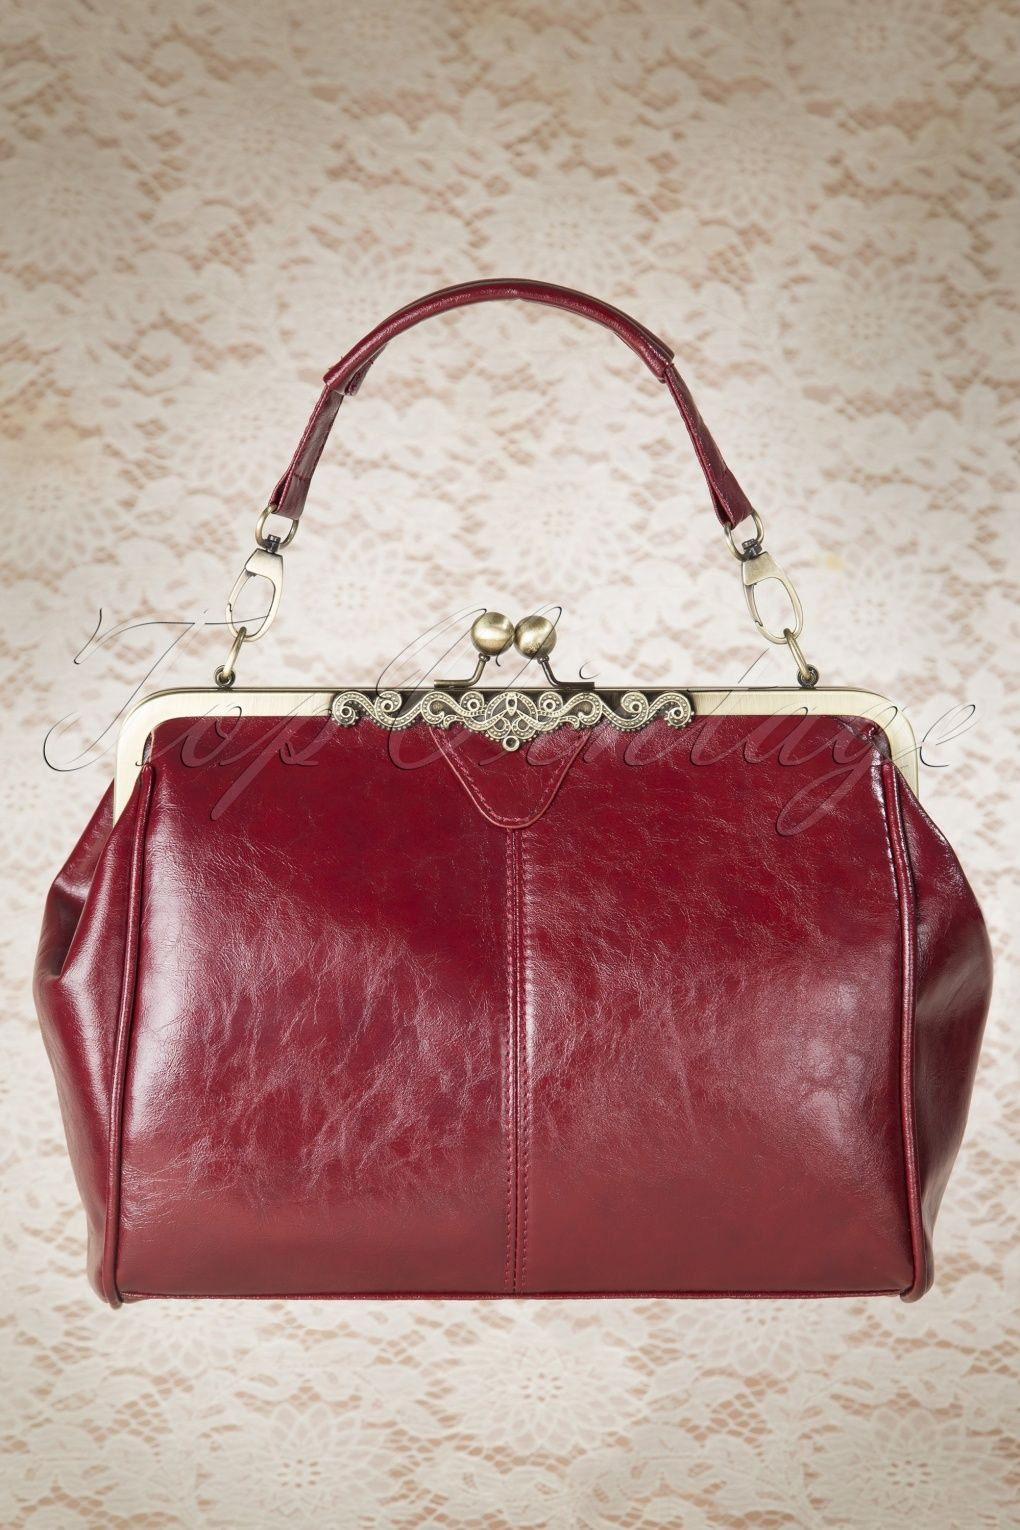 20s Vintage Frame Kisslock Clasp Bag in Burgundy   Handbags   Bags ... 62aee2a63b